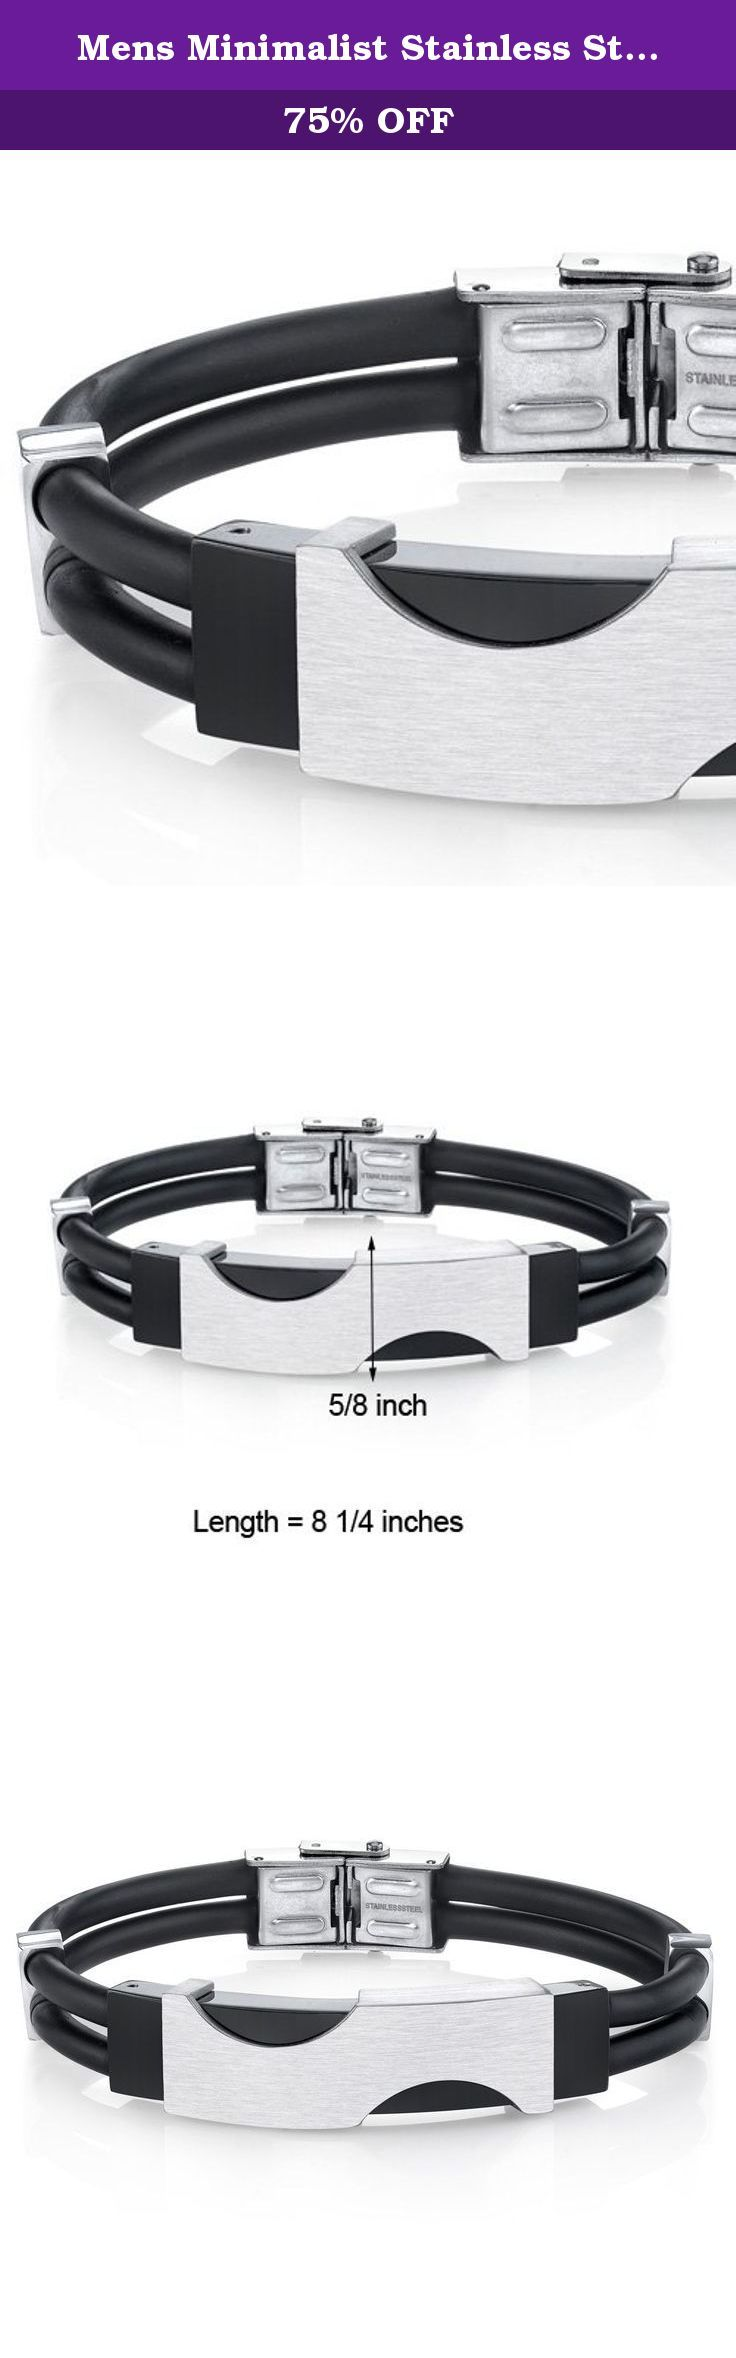 Mens Minimalist Stainless Steel and Black Silicon Bracelet. Brushed finish, hypo-allergenic, biocompatible 316L Stainless Steel and dual black silicon cord bracelet adds a unique and sleek style to a charming personality. This simple elegance can be enjoyed by fashion forward guys who want a great accessory that will bring cool style to their regular look. The user friendly clasp is secure and ensures a comfortable fit. Bracelet measures: 8 1/4 inches in legnth and 5/8 inch in width…